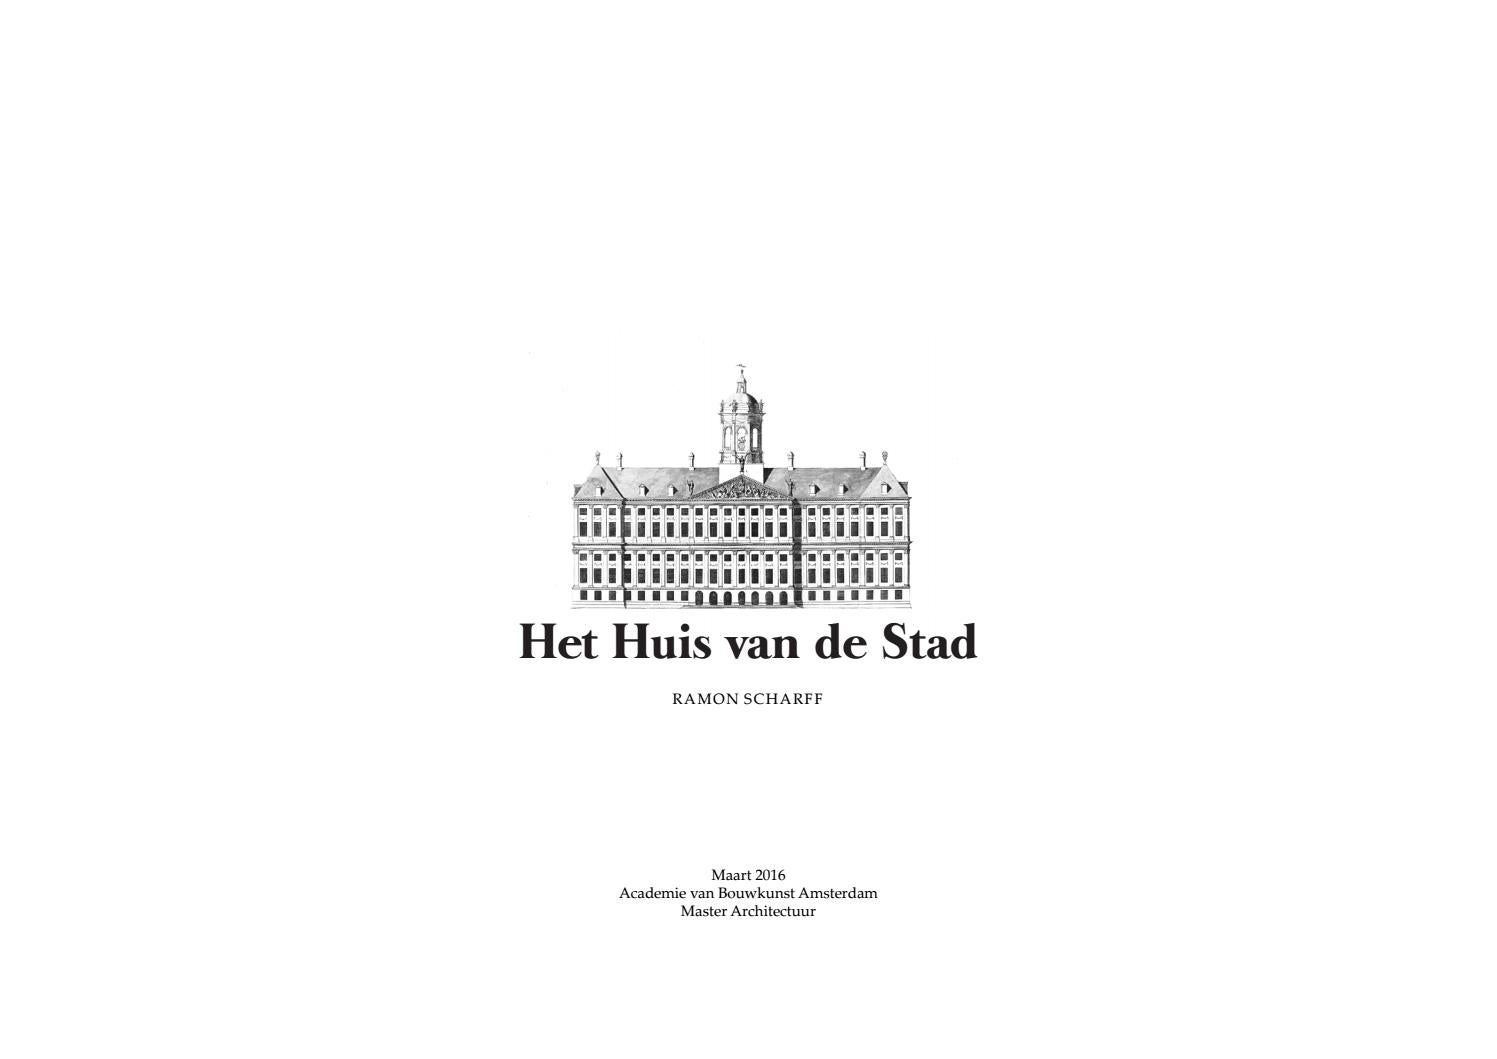 bfb9a36c95d Ramon scharff master of architecture huis van de stad by Amsterdam Academy  of Architecture - issuu